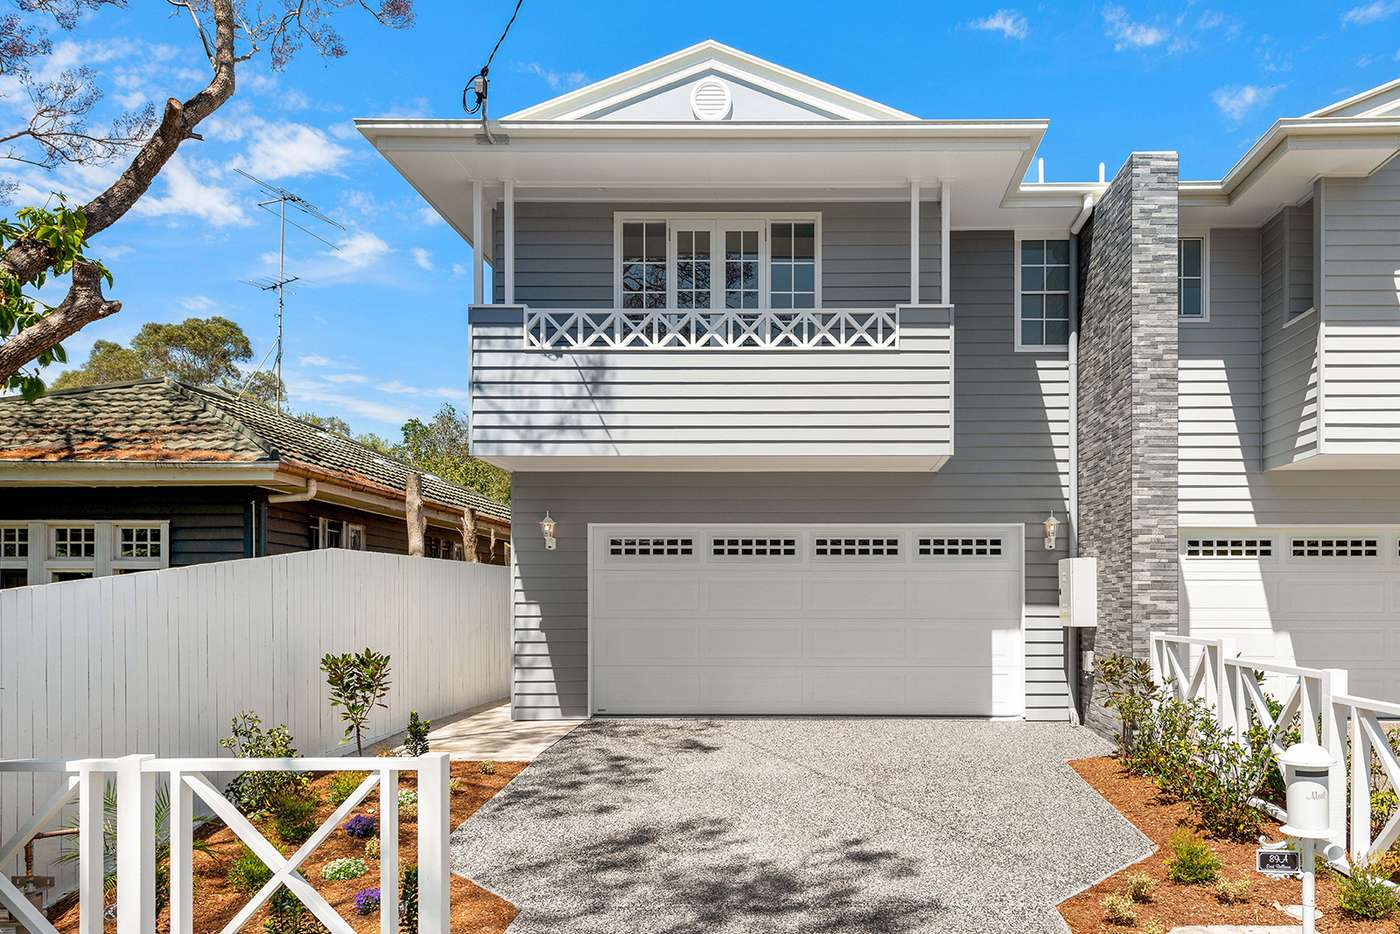 Main view of Homely house listing, 89A Victoria Terrace, Greenslopes QLD 4120